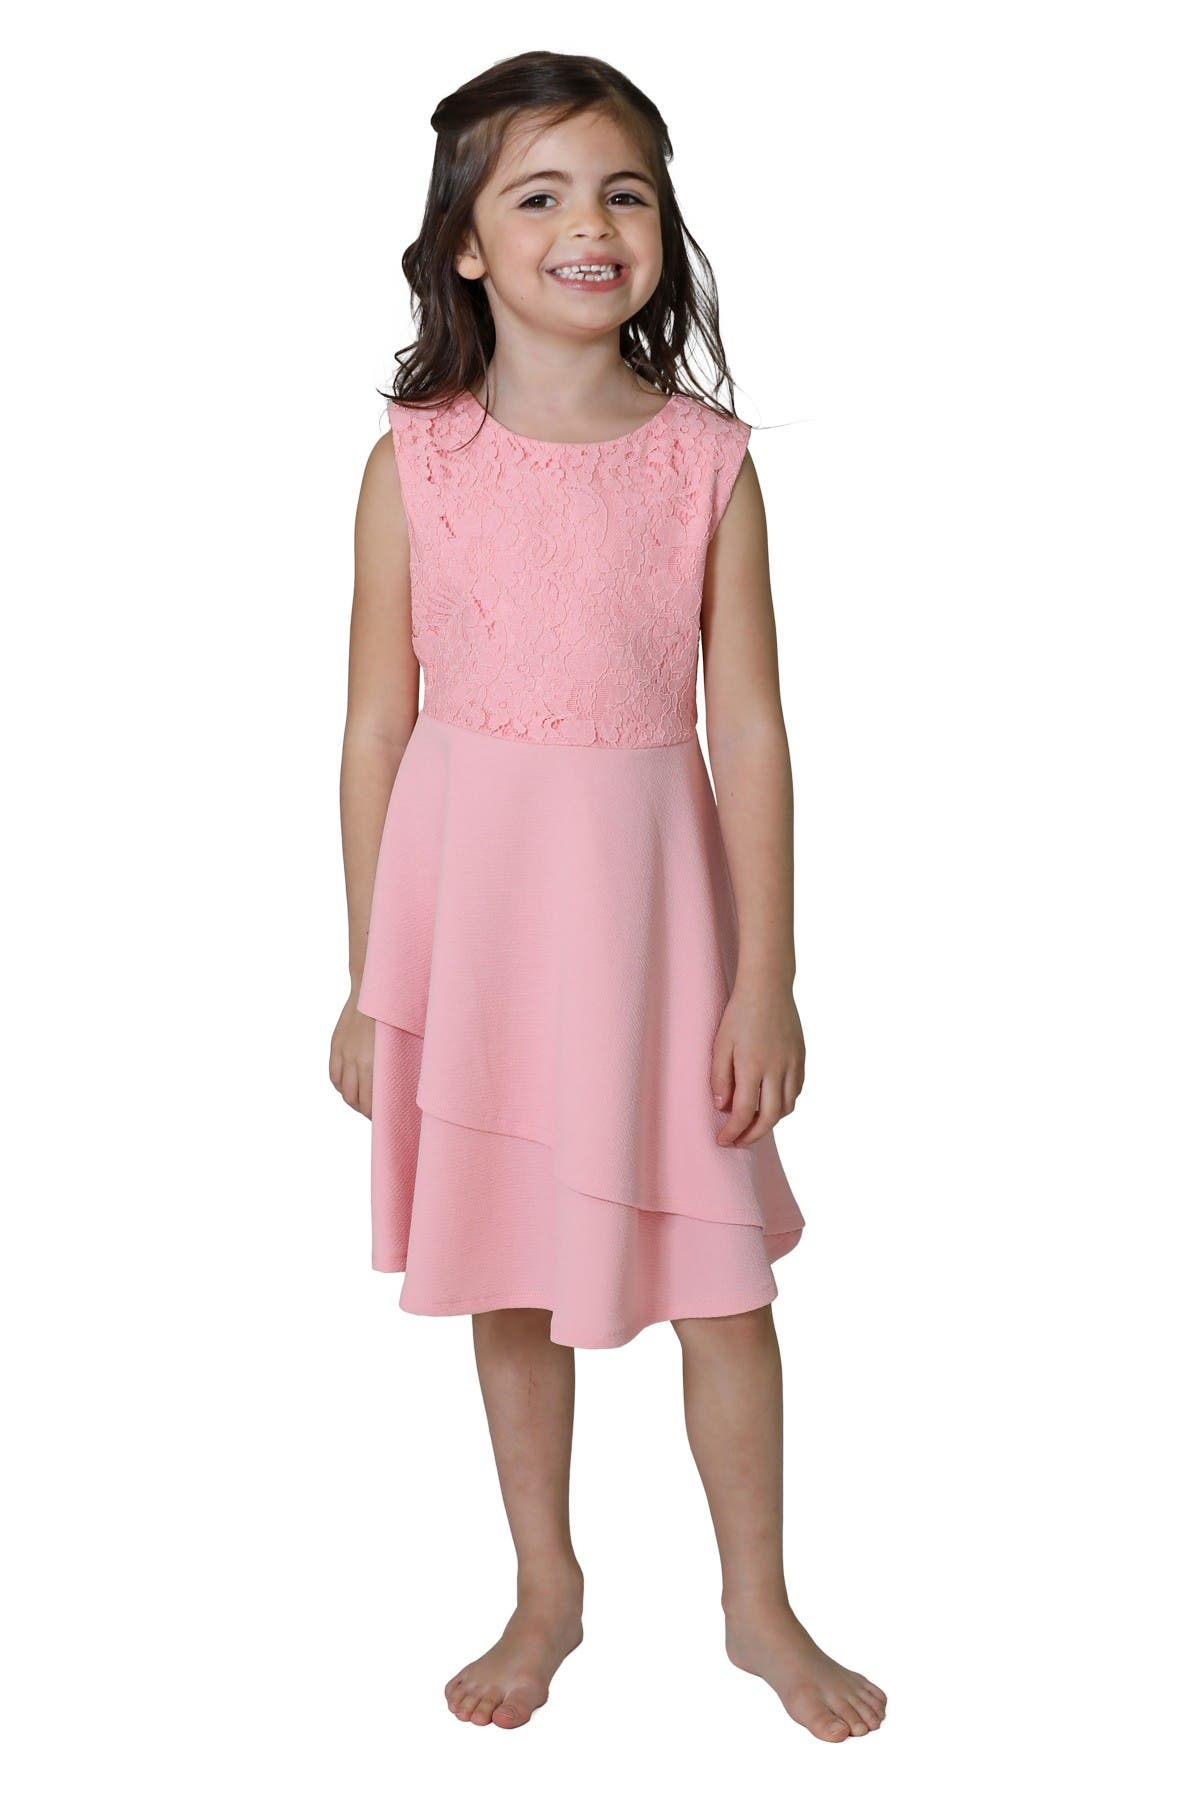 Image of Little Angels Lace Bodice Knit Dress